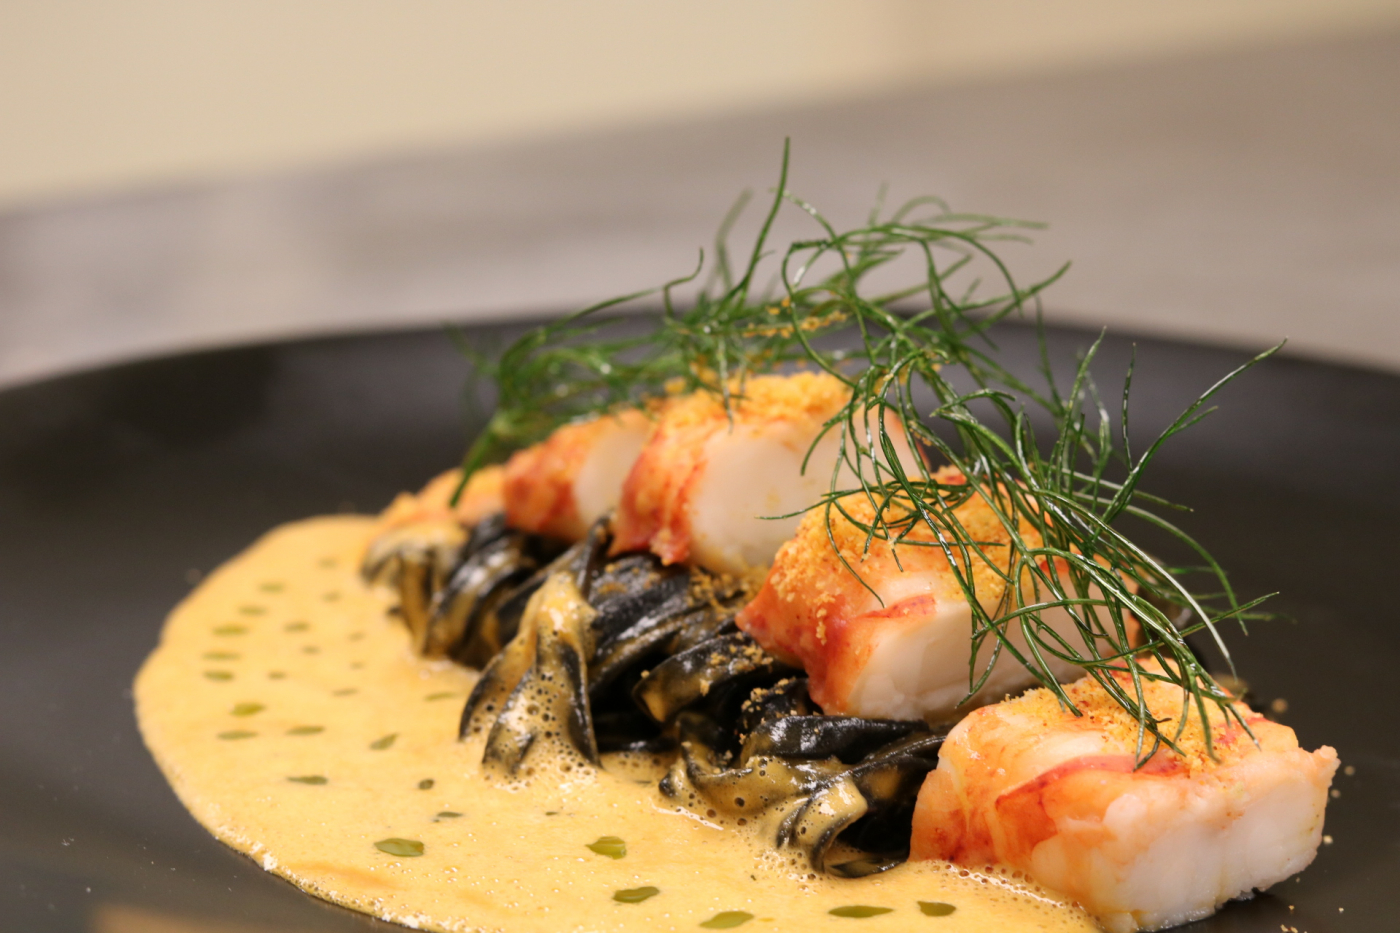 Squid ink Pasta ChitarraSlow cook 57c lobster TailAnise Crisp + Oil